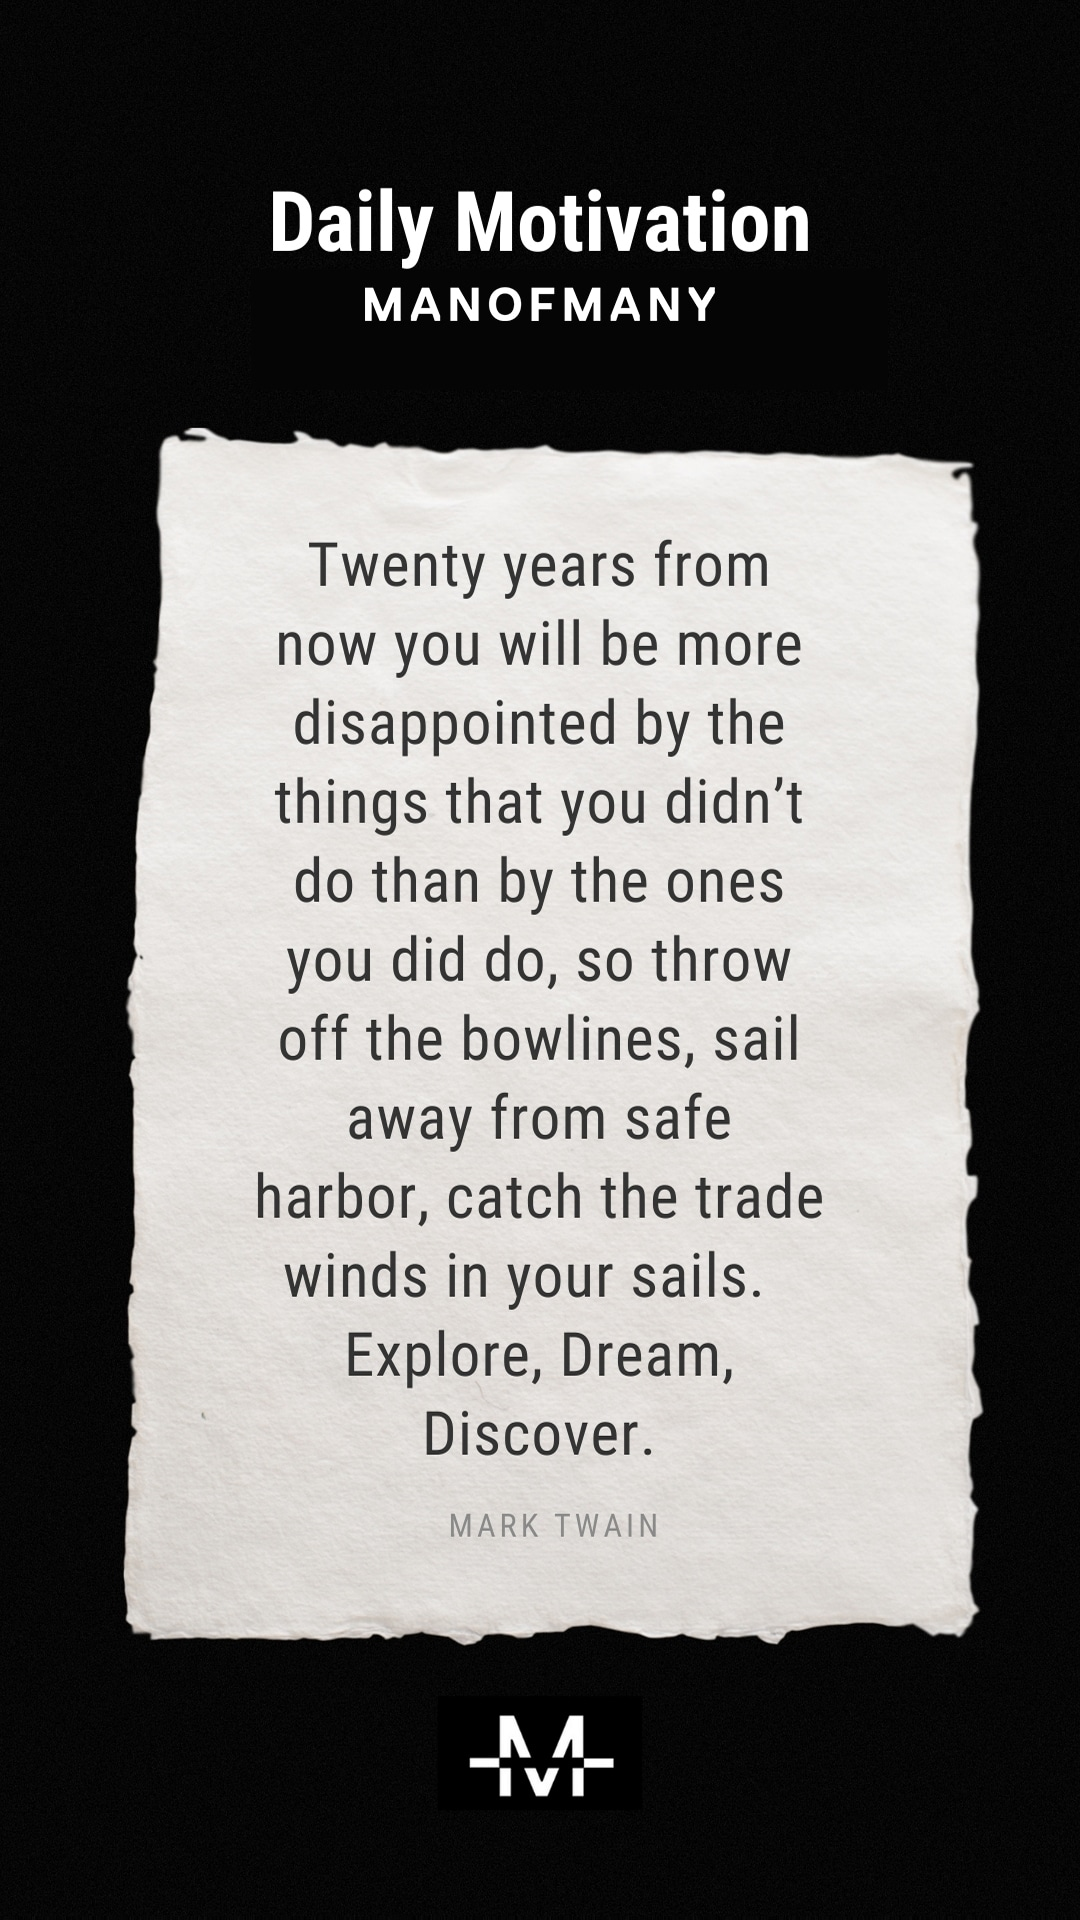 Twenty years from now you will be more disappointed by the things that you didn't do than by the ones you did do, so throw off the bowlines, sail away from safe harbor, catch the trade winds in your sails. Explore, Dream, Discover. –Mark Twain quote